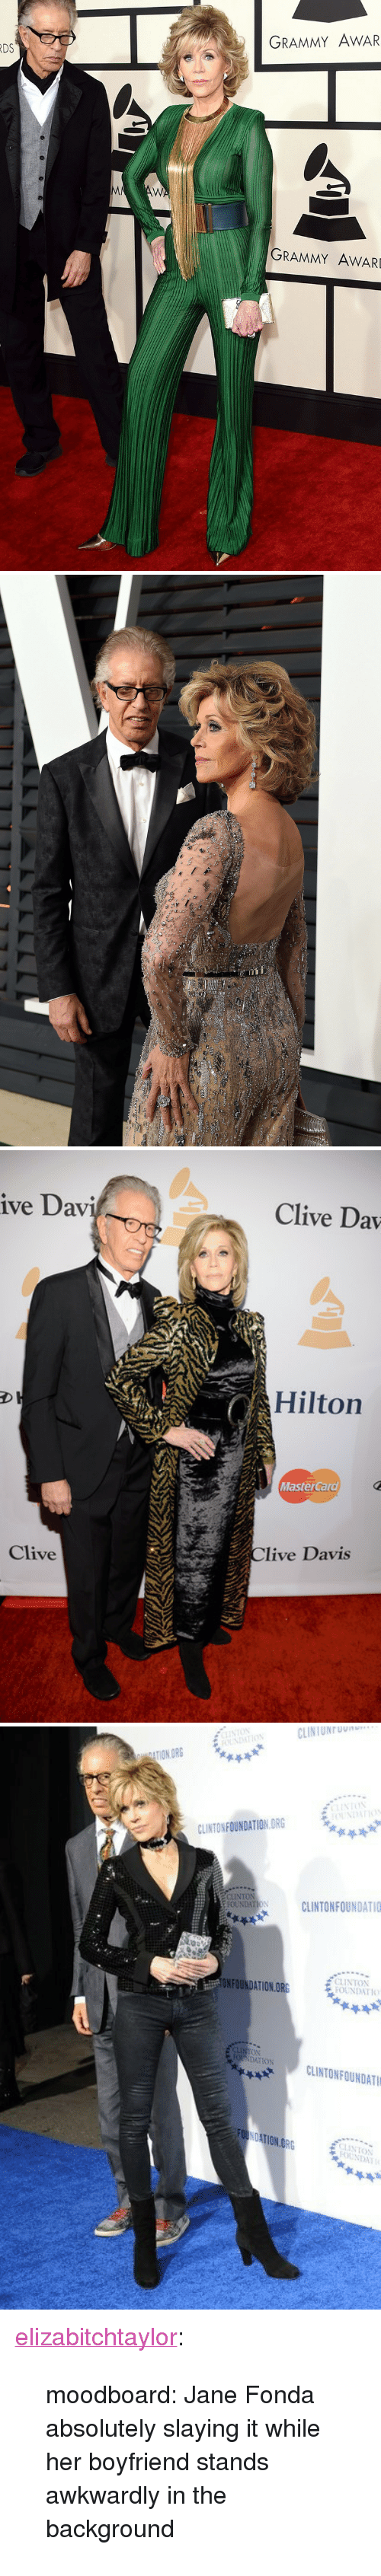 """MasterCard: GRAMMY AWAR  DS  GRAMMY AWARD   ive Dav  Clive Dav  Hilton  MasterCard  Clive  live Davis   o CLINTONFOONO  FOUNDHTIO  TION ORG  IST(パ  CLINTON FOUNDATION ORG  FOUNDATIOSCLINTONFOUNDATIO  NFOUNDATION.ORG  ECLINTON  AtON CLINTONFOUNDATI  CLINTONFOUNDATI  FOt  NTON  OUNDA <p><a href=""""http://elizabitchtaylor.tumblr.com/post/166769067922/moodboard-jane-fonda-absolutely-slaying-it-while"""" class=""""tumblr_blog"""" target=""""_blank"""">elizabitchtaylor</a>:</p> <blockquote><p>moodboard: Jane Fonda absolutely slaying it while her boyfriend stands awkwardly in the background</p></blockquote>"""